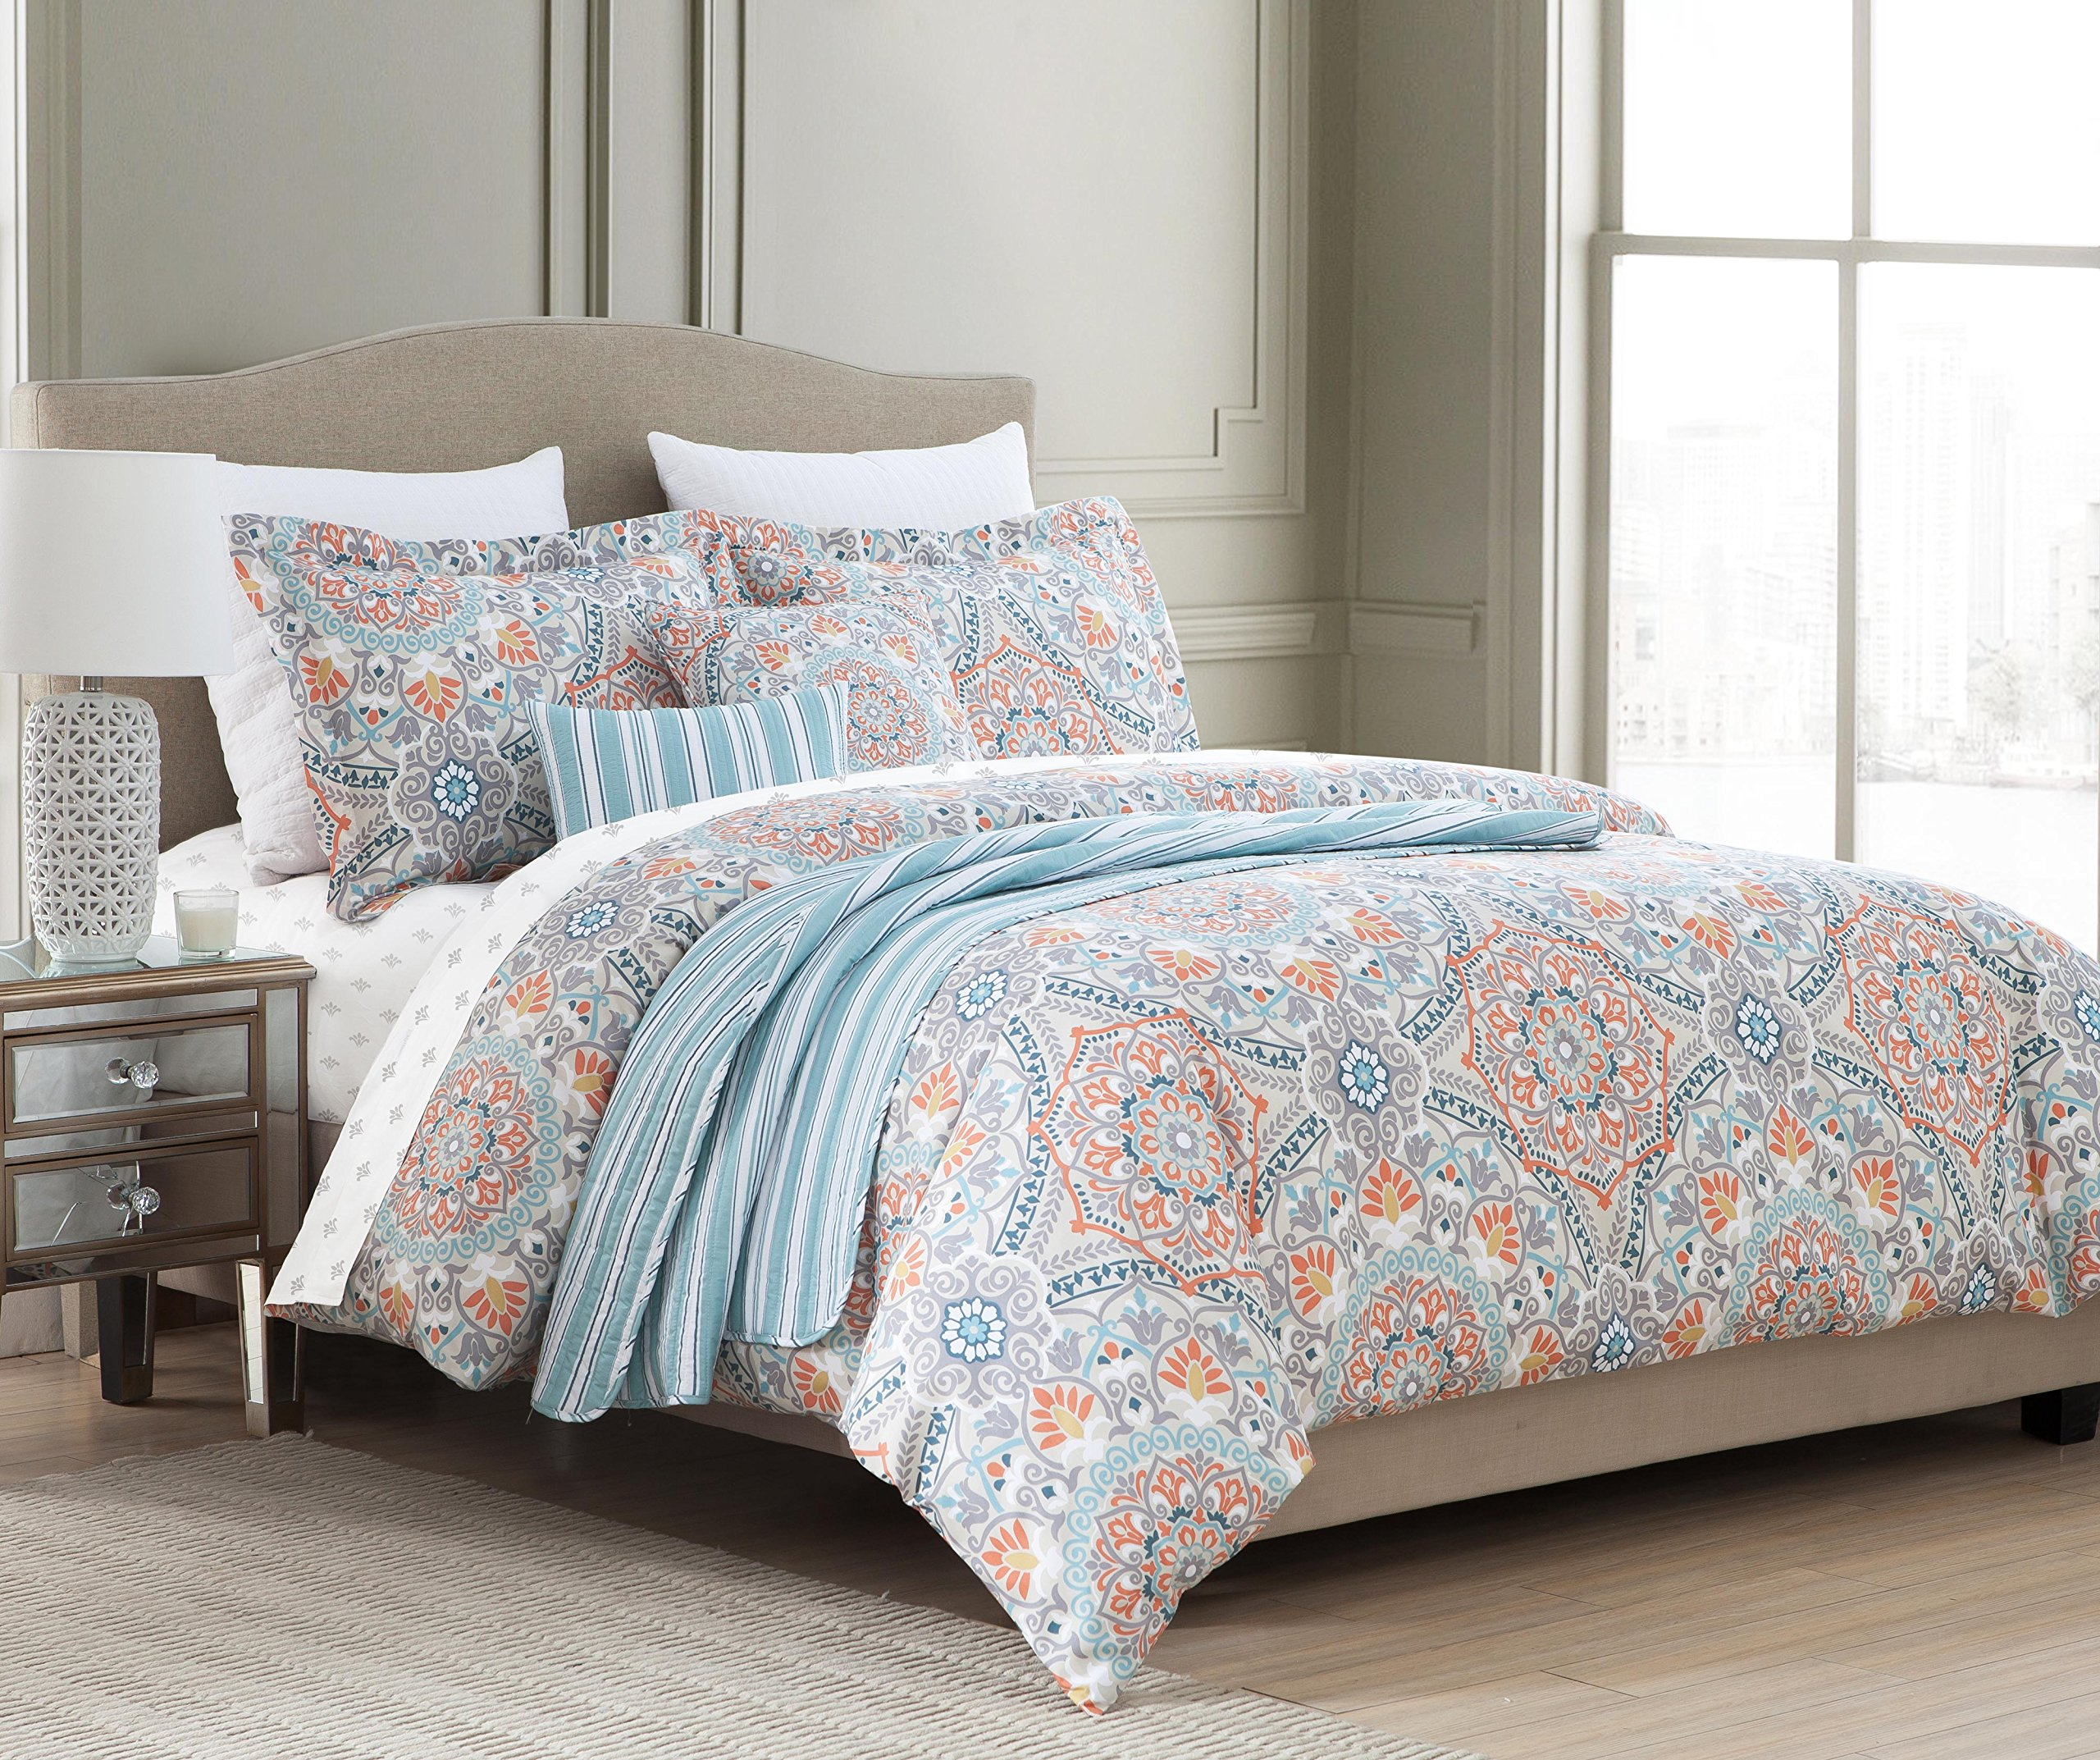 blue set bedroom furniture queen for orange sets comforter fabulous ideas